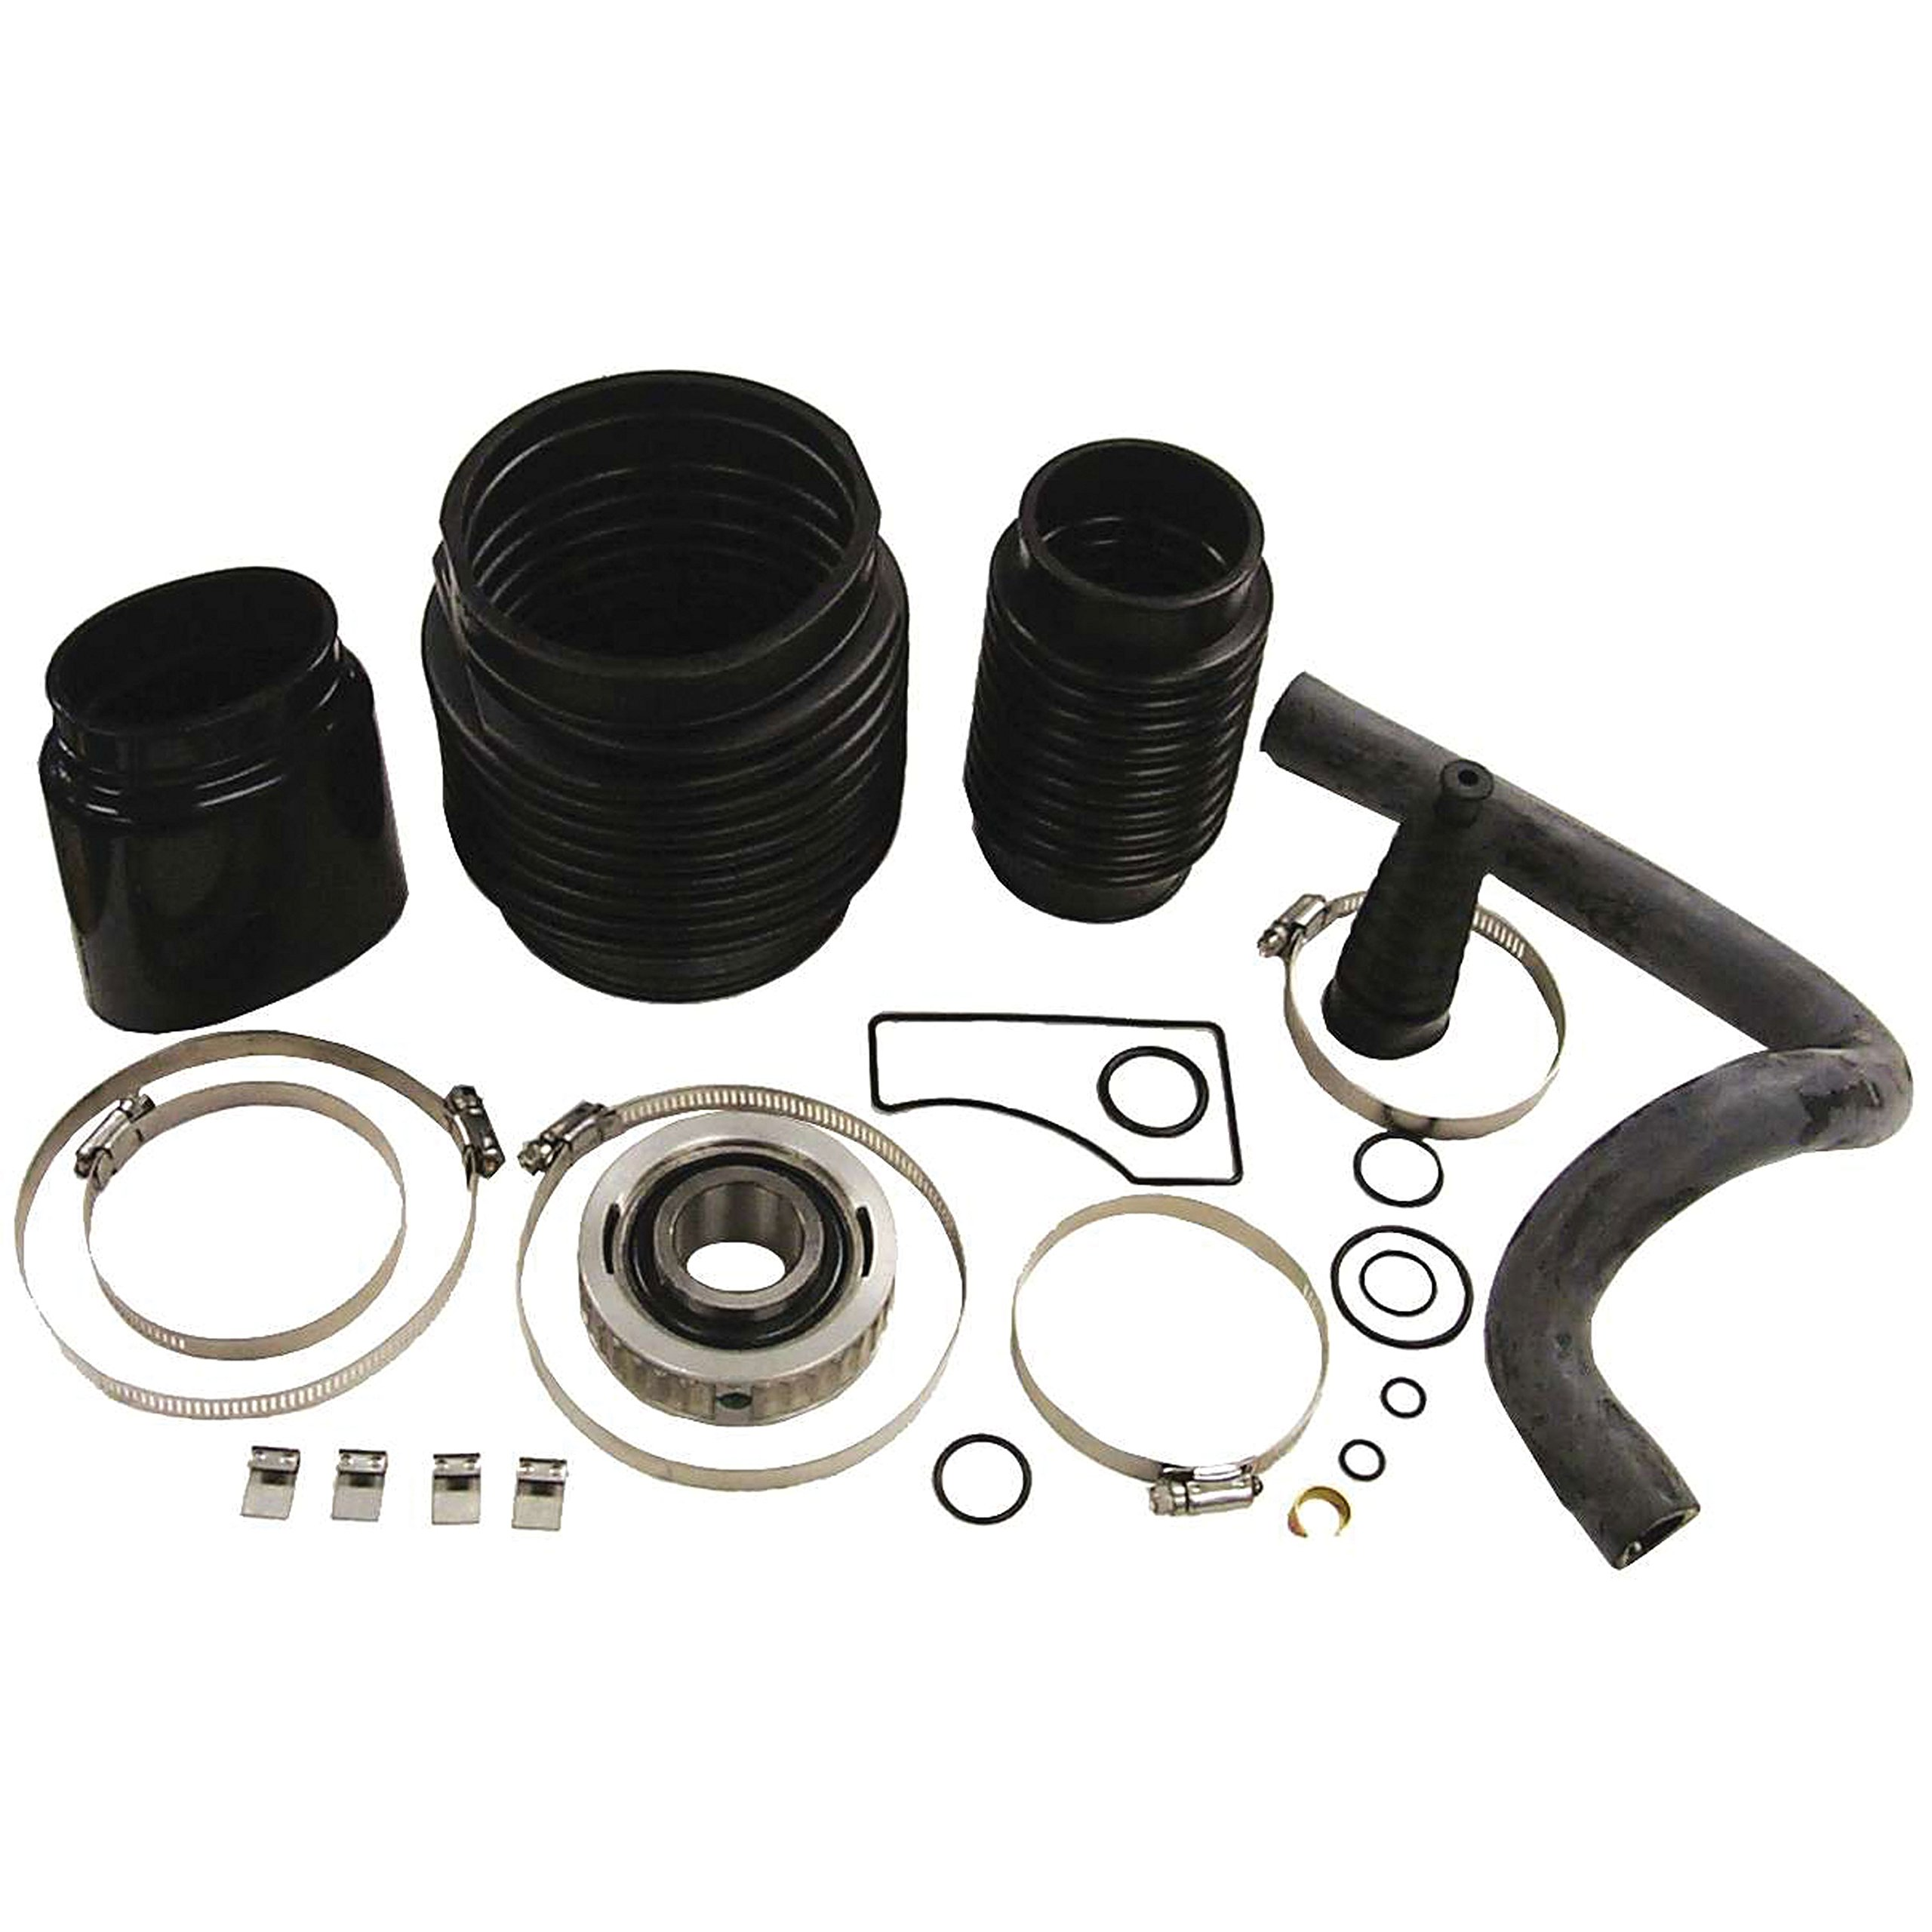 Sierra 18-8212-1 Mercruiser Transom Seal Kit - Replaces 30-803100T1 by Sierra